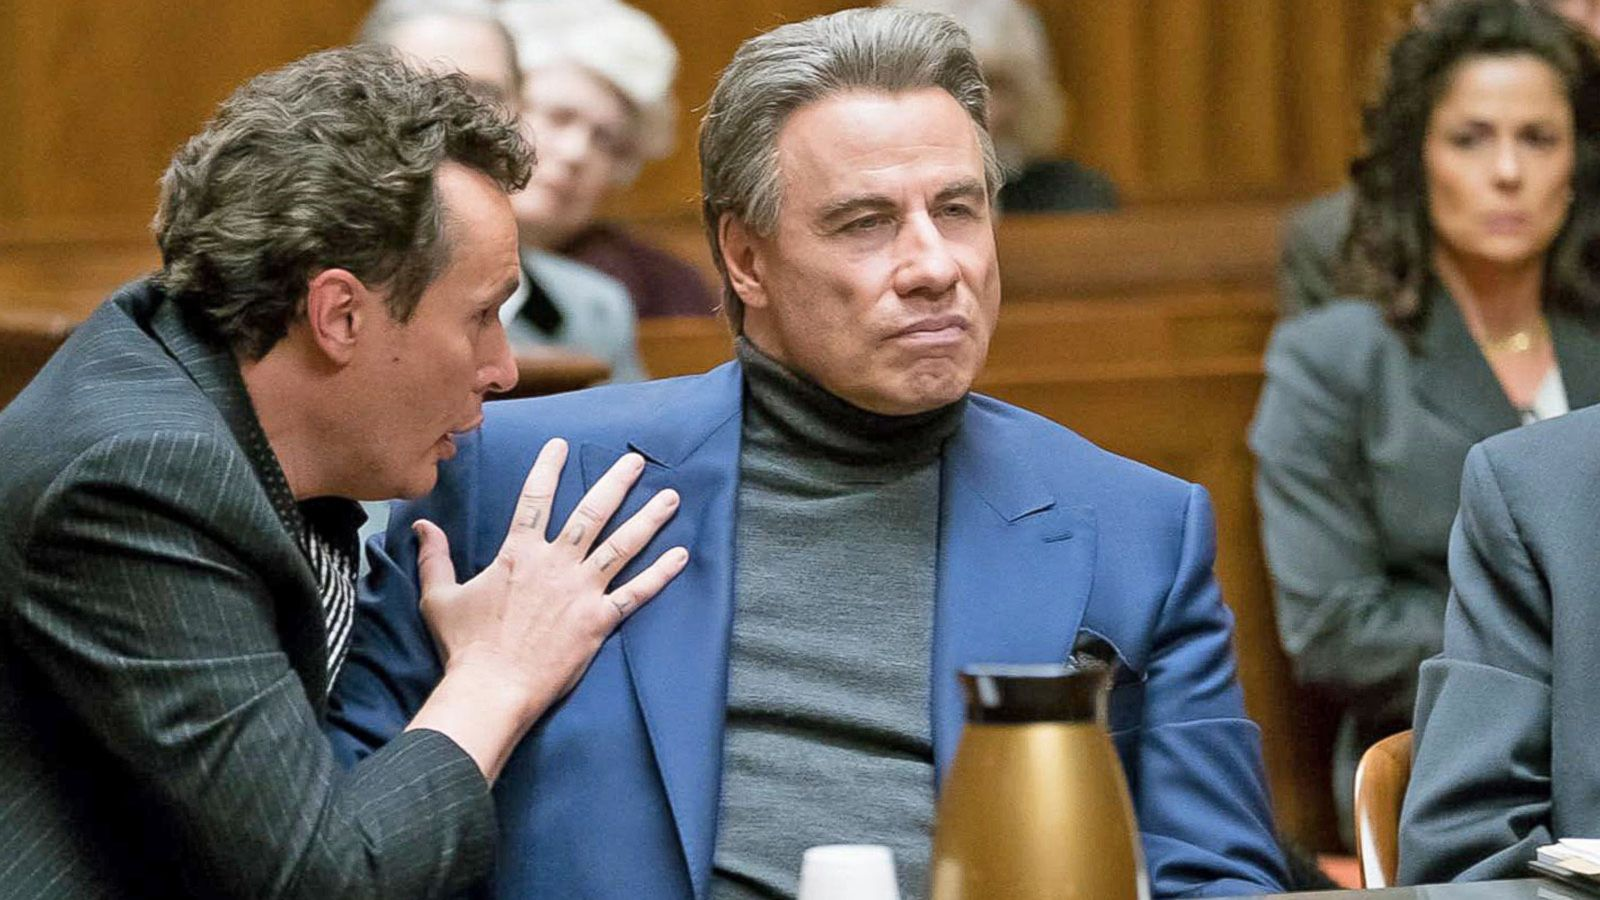 VIDEO: Behind the Scenes of 'The Life and Death of John Gotti'